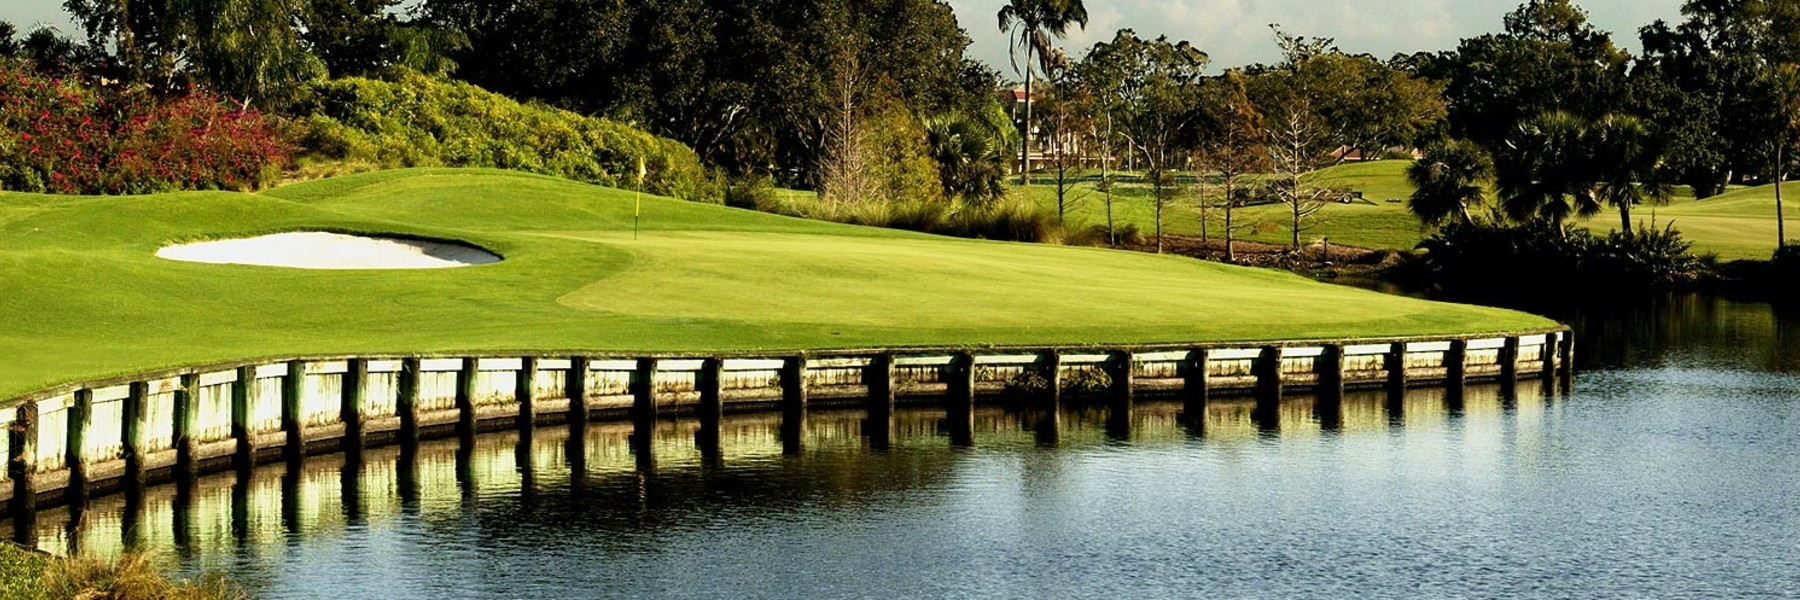 Golf Vacation Package - The Club at Emerald Hills